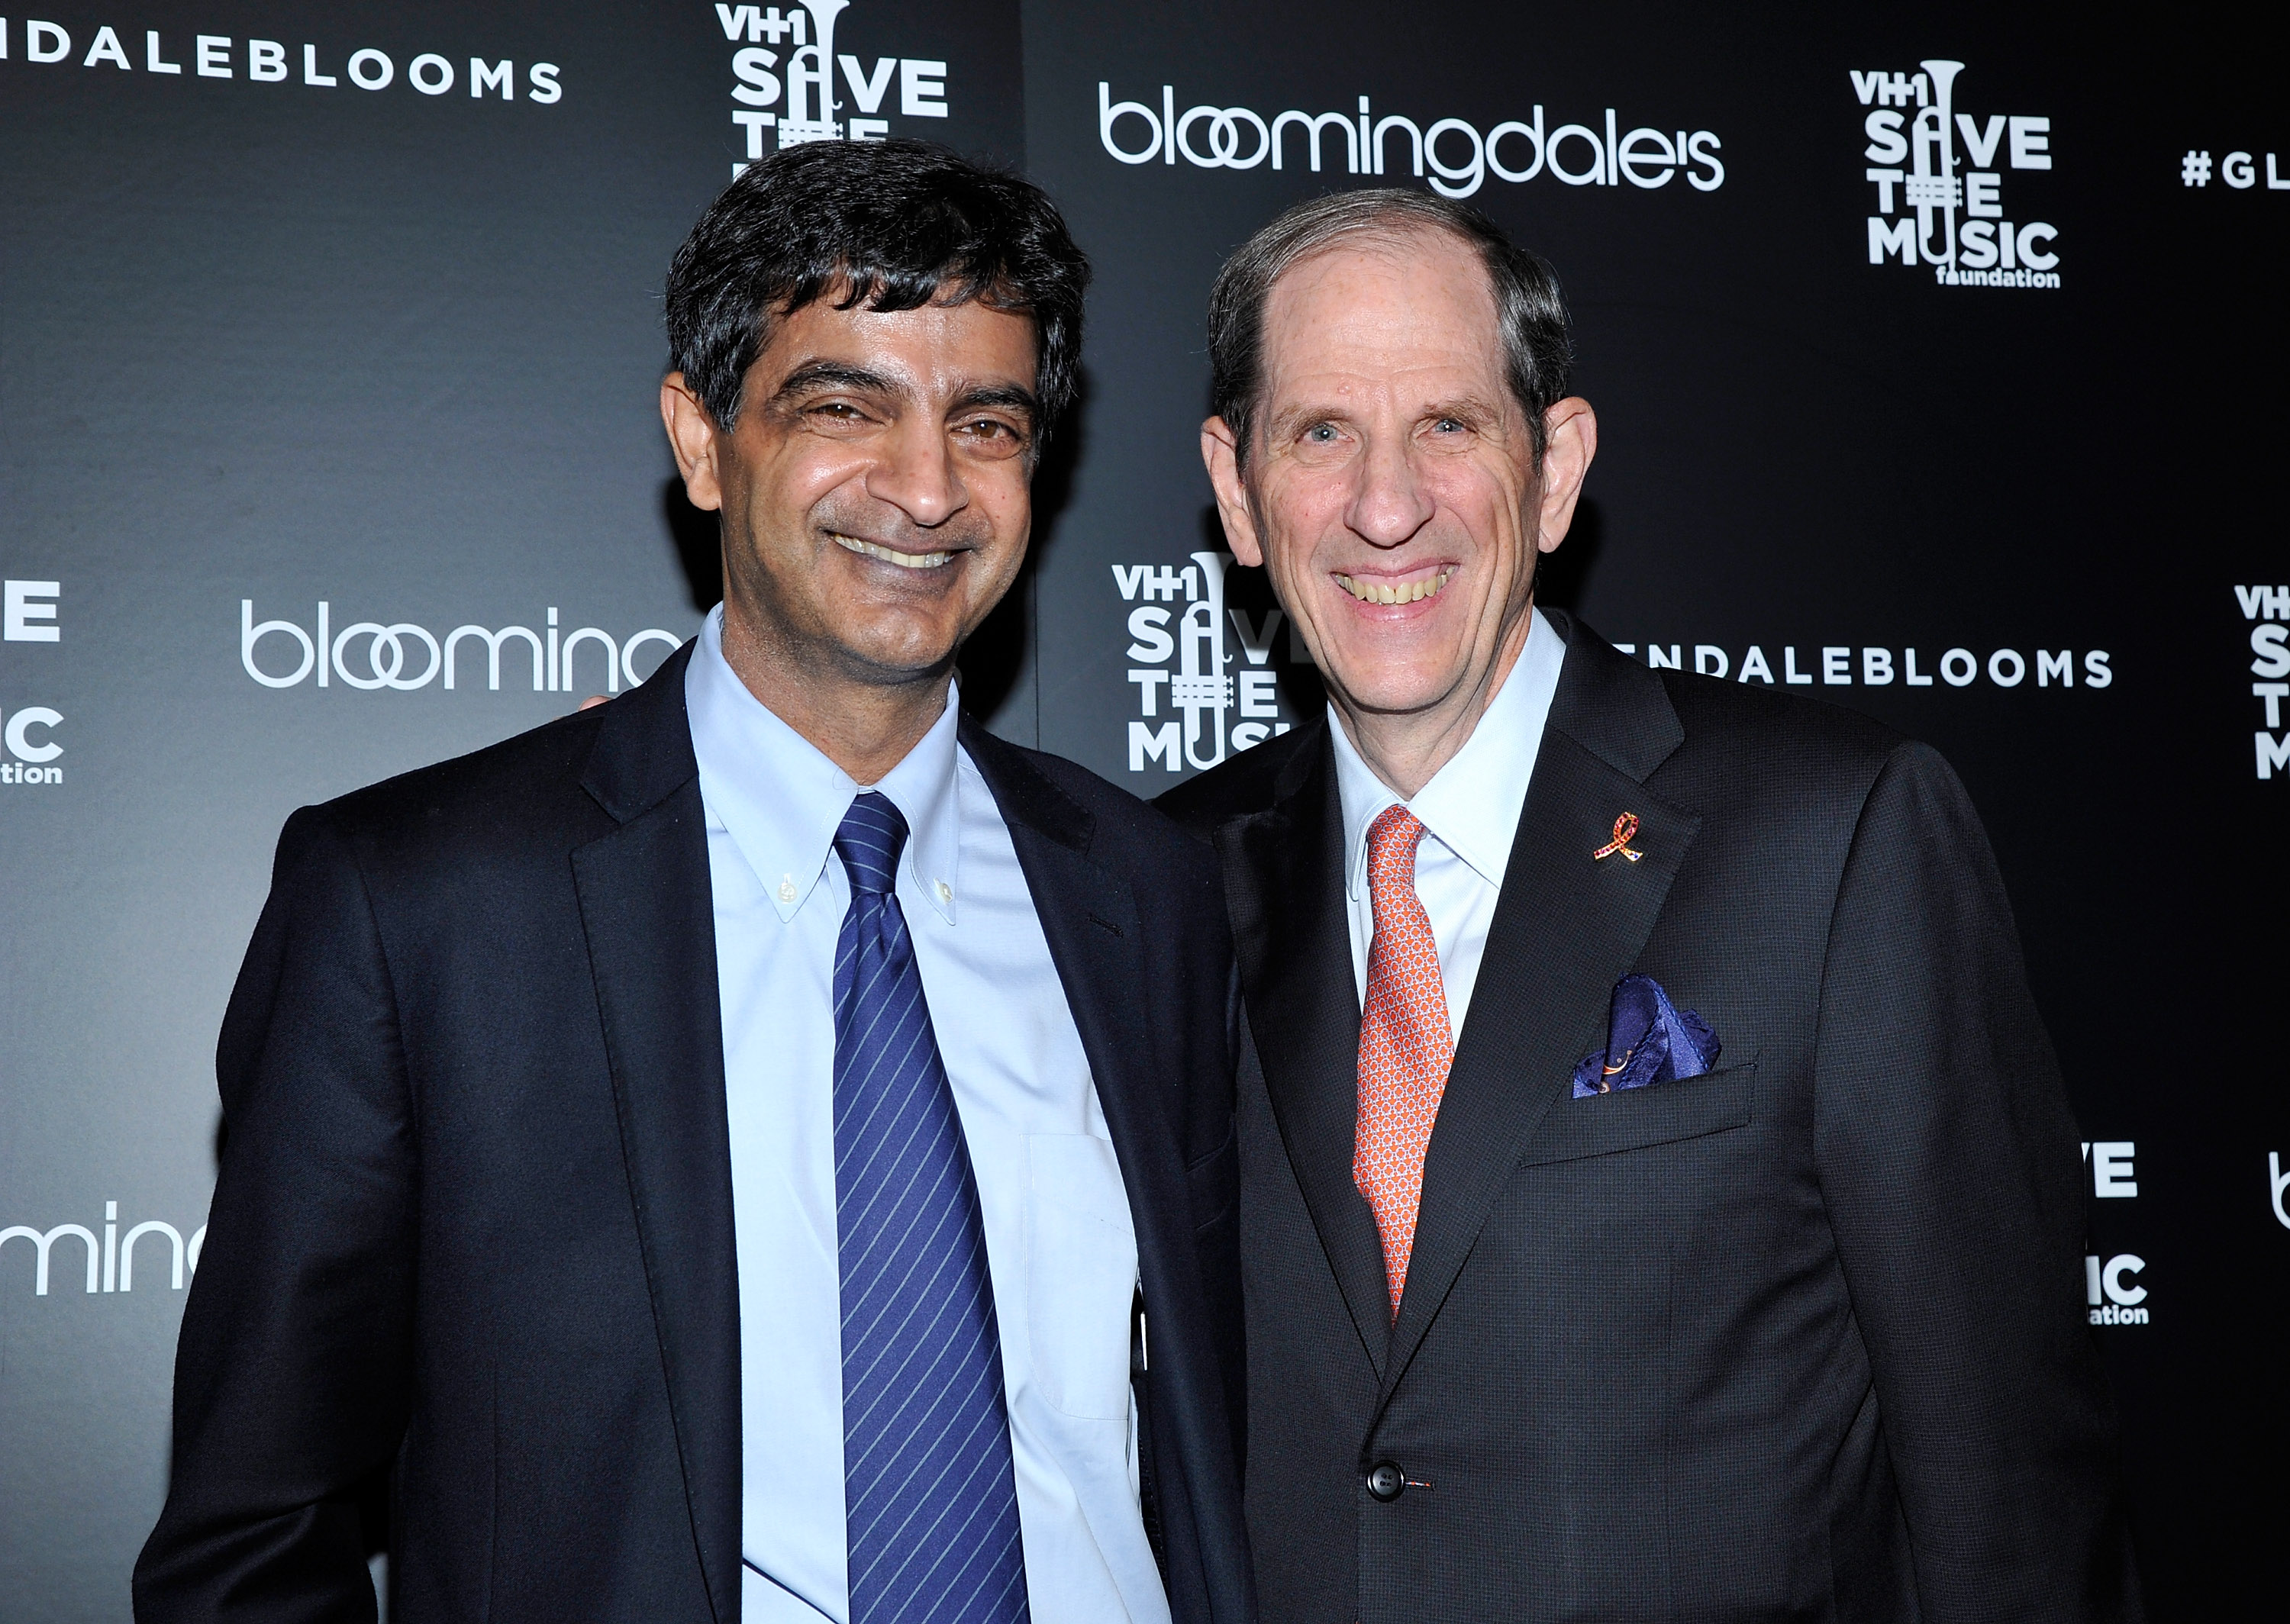 Bloomingdale's Glendale Hosts Opening Gala Celebration With VH1 Save The Music Foundation